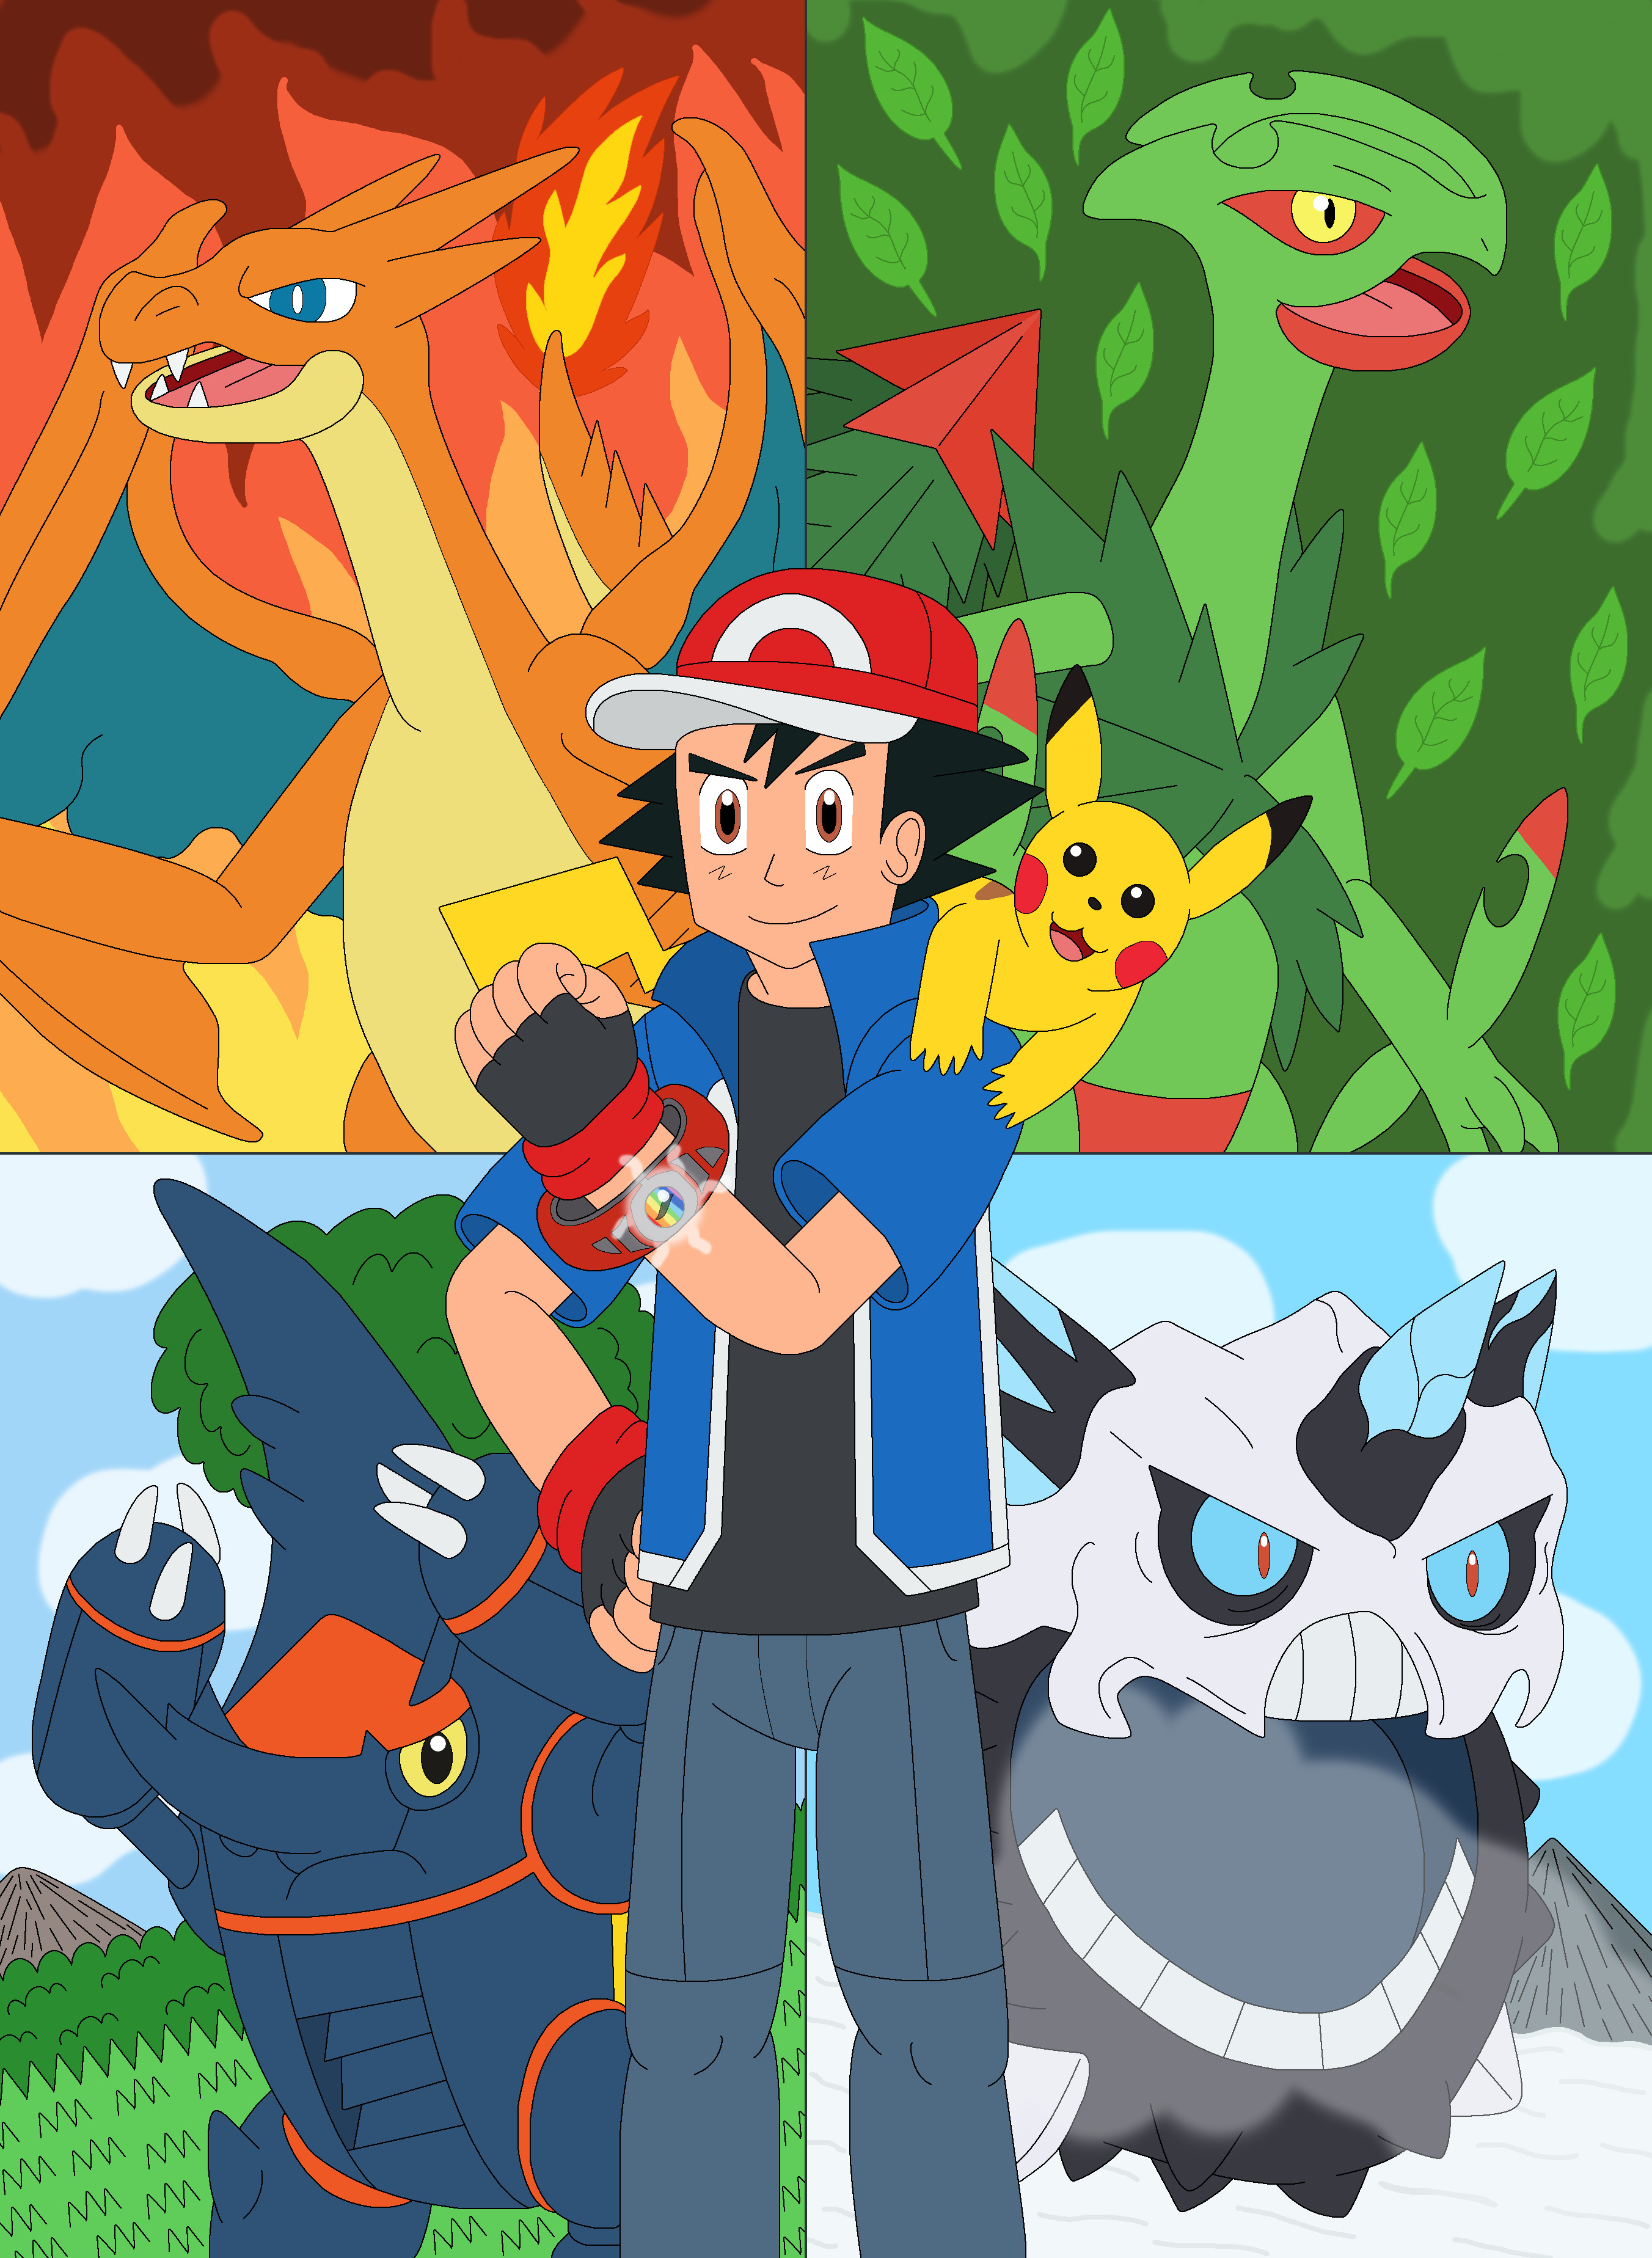 pokemon ash as a snivy images pokemon images